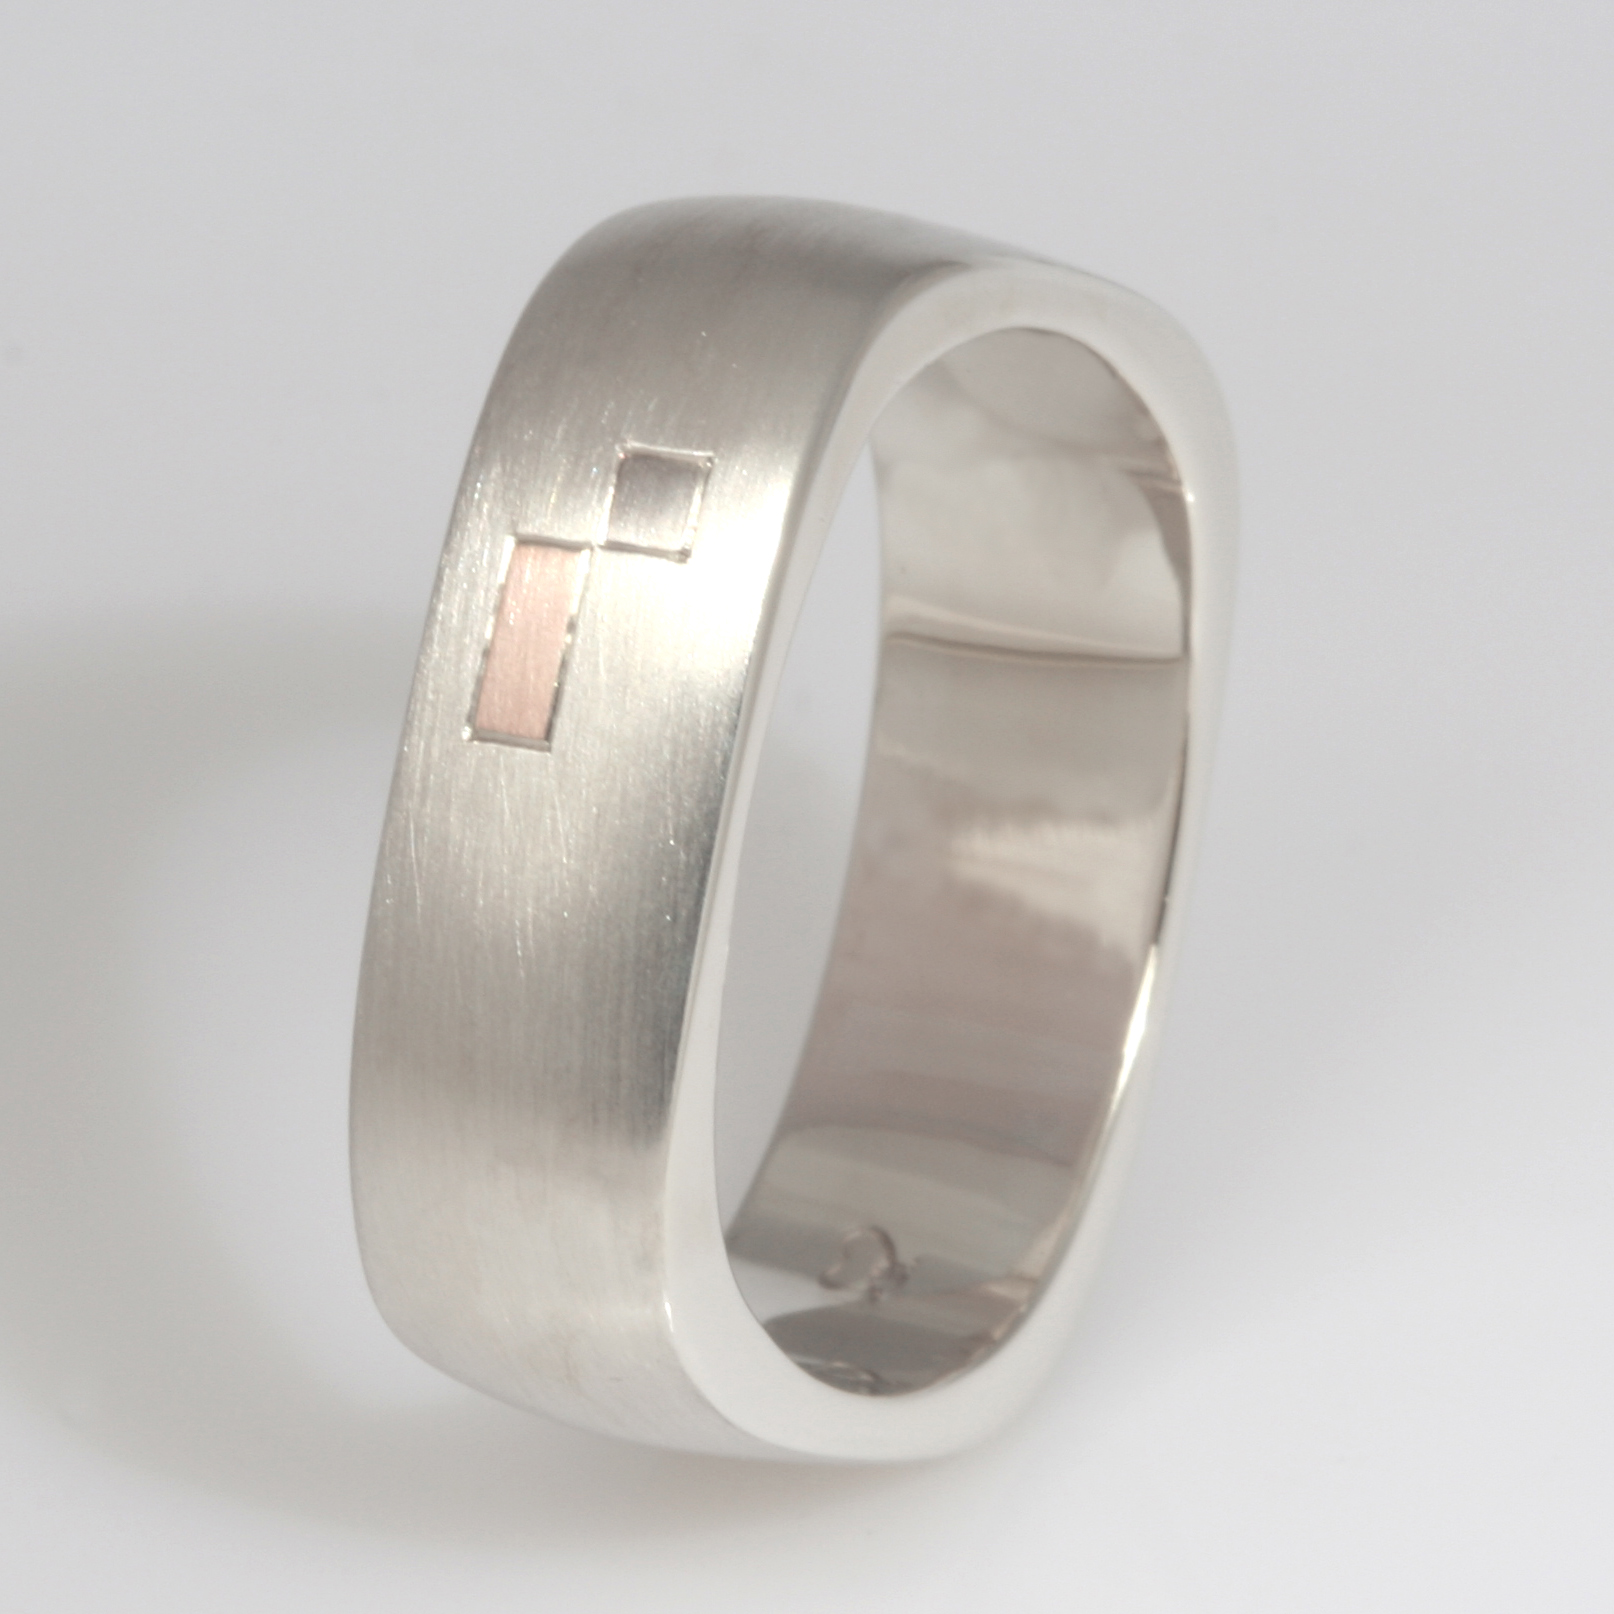 Handmade gents 9ct white gold square wedding ring featuring a 18ct white gold square inlay and a 18ct rose gold rectangular inlay